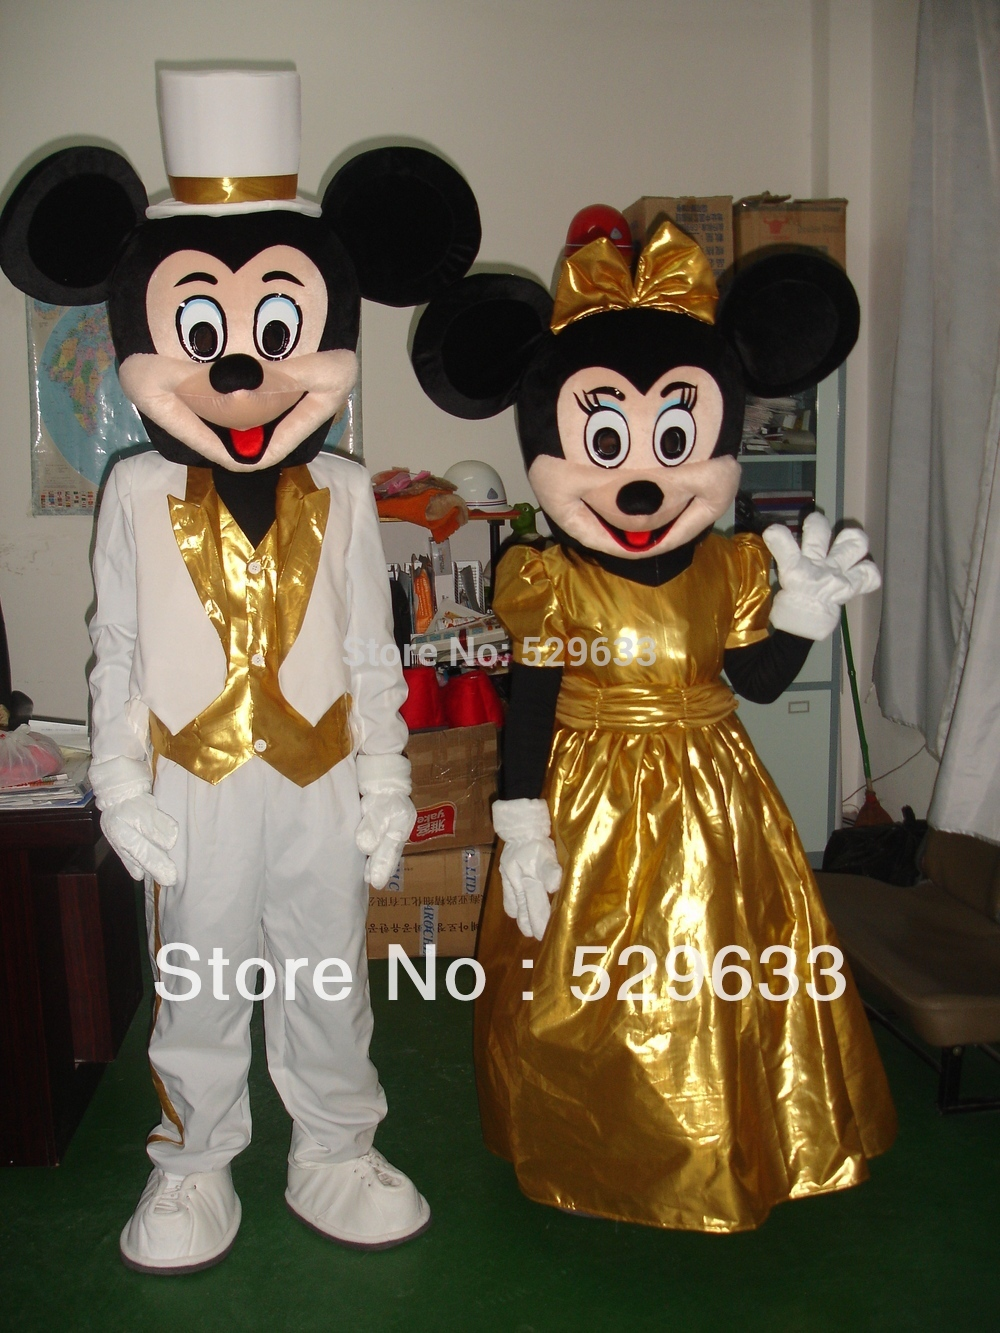 2017 Crazy Sale Minnie Mouse Mascot Costume Fancy Dress Costume Free Shipping